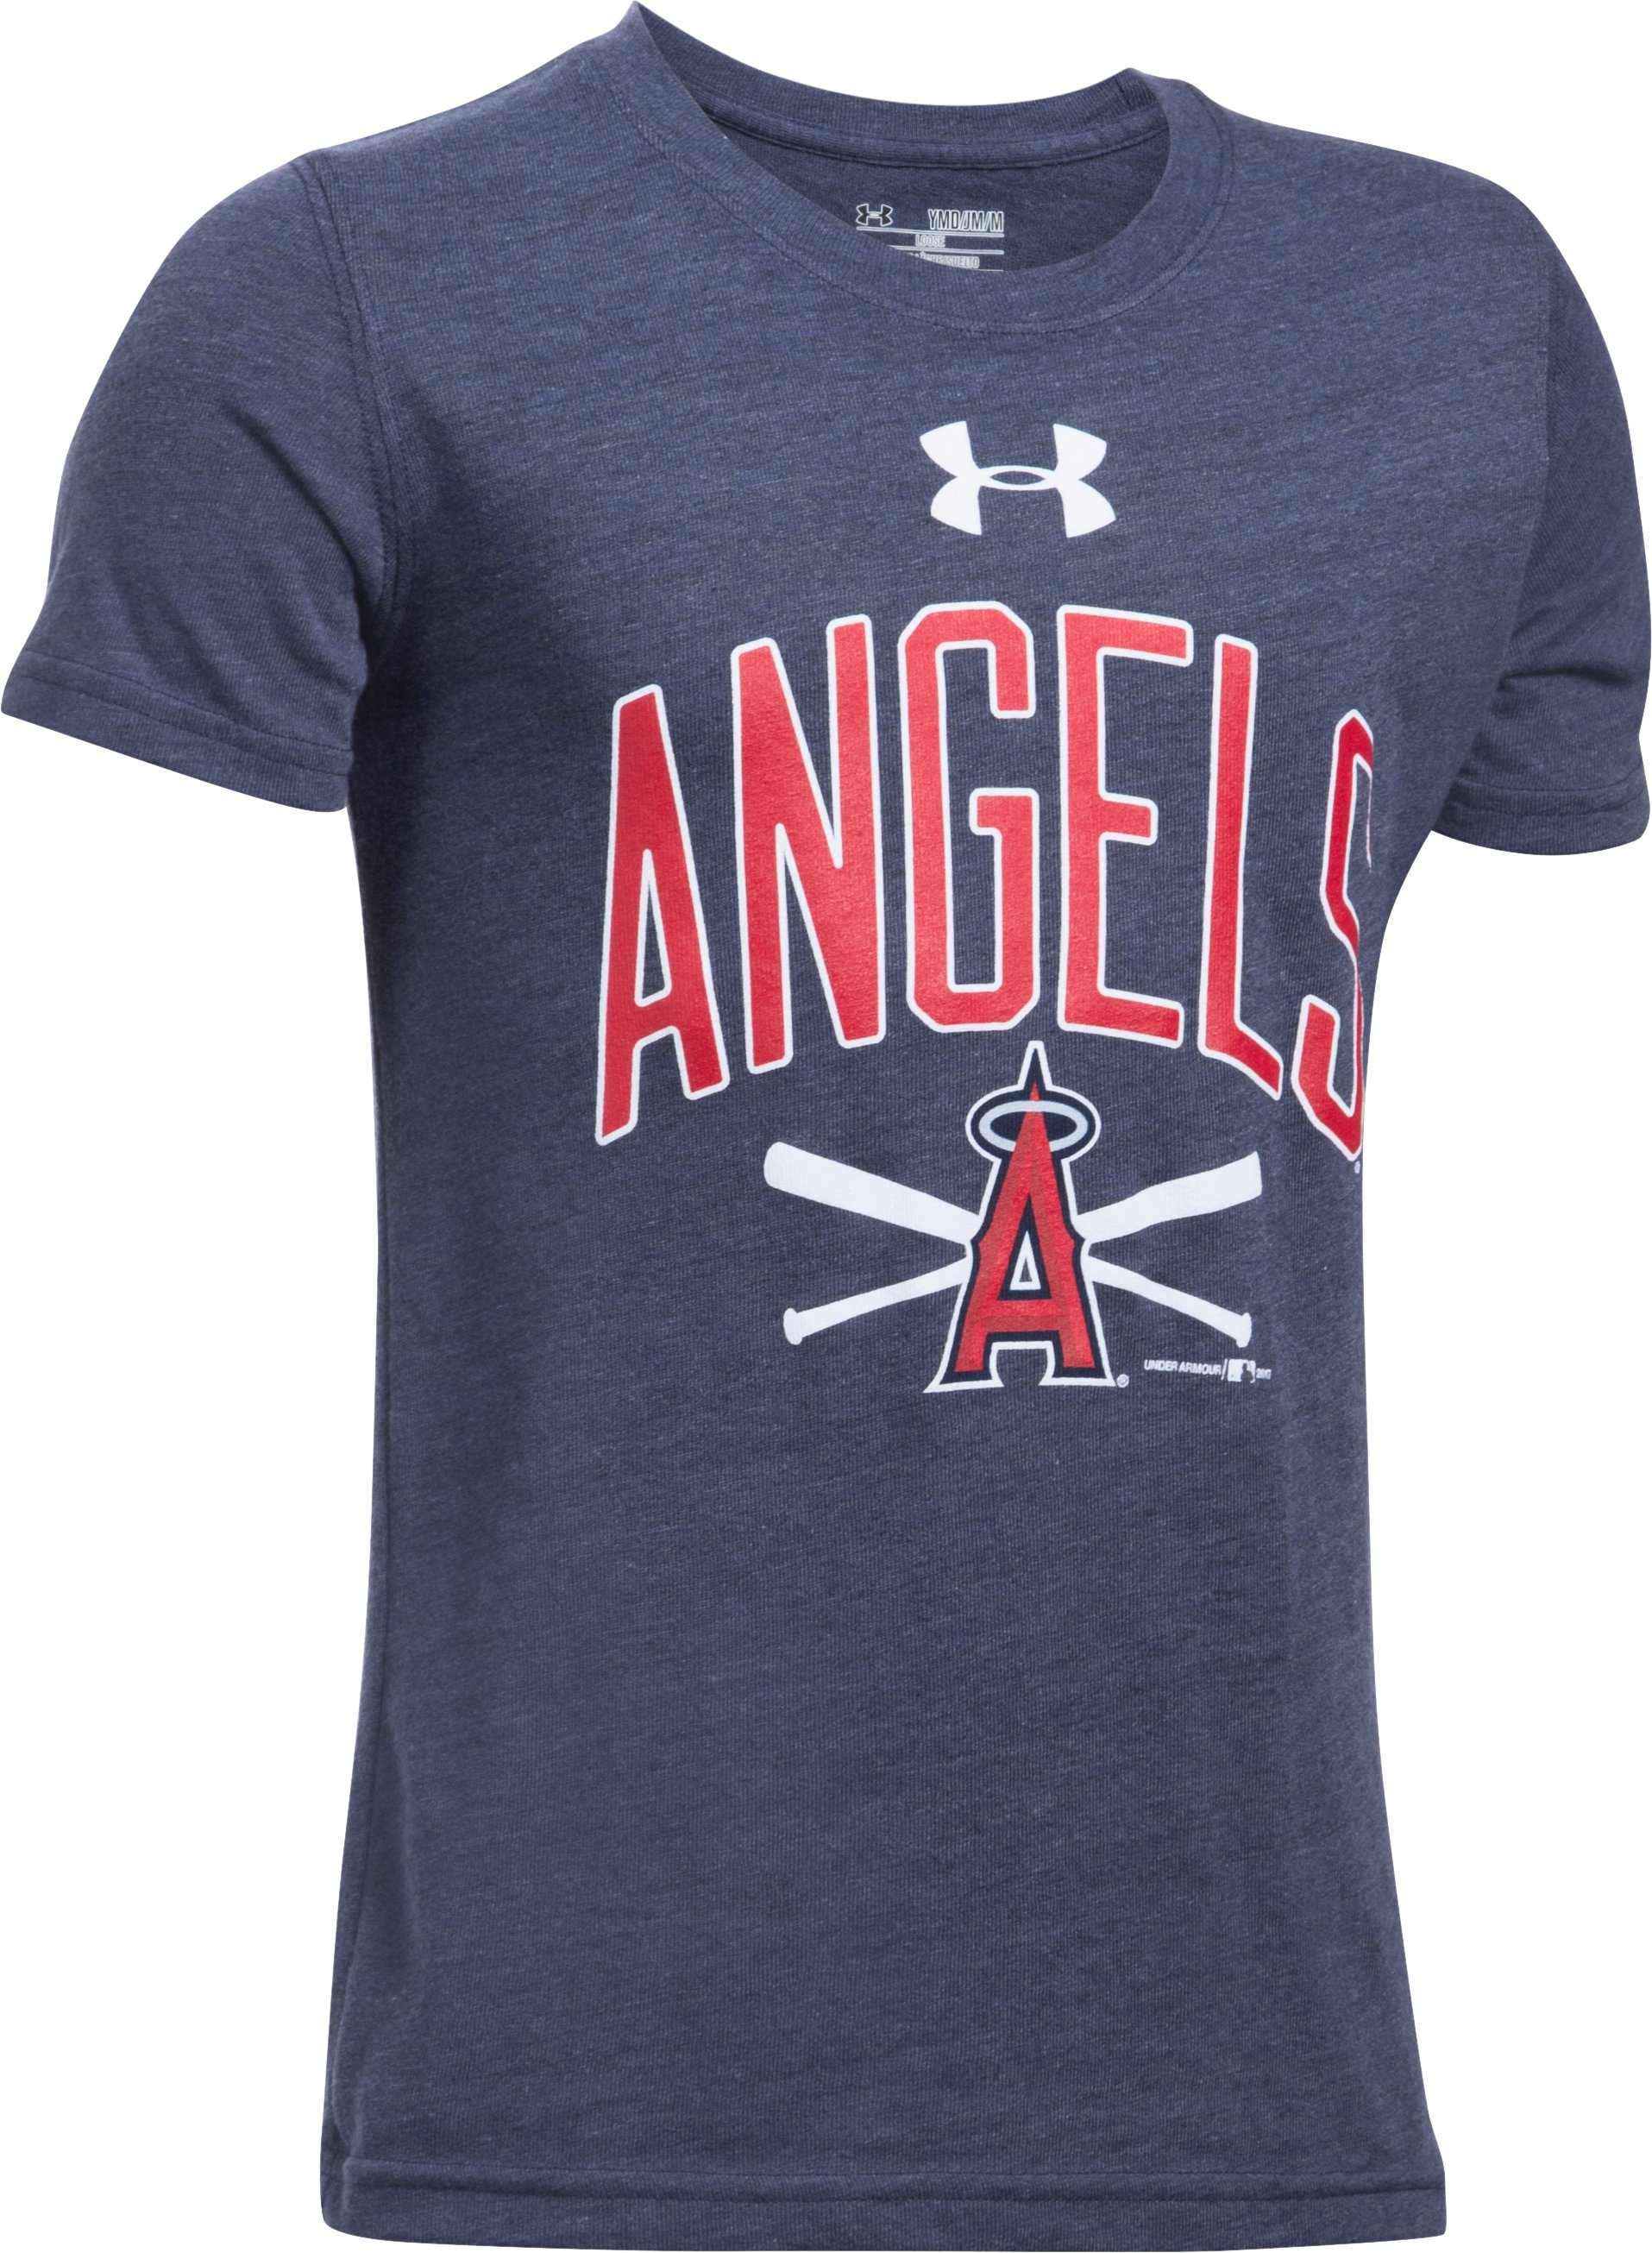 Boys' Los Angeles Angels Tri-Blend T-Shirt, Midnight Navy, undefined